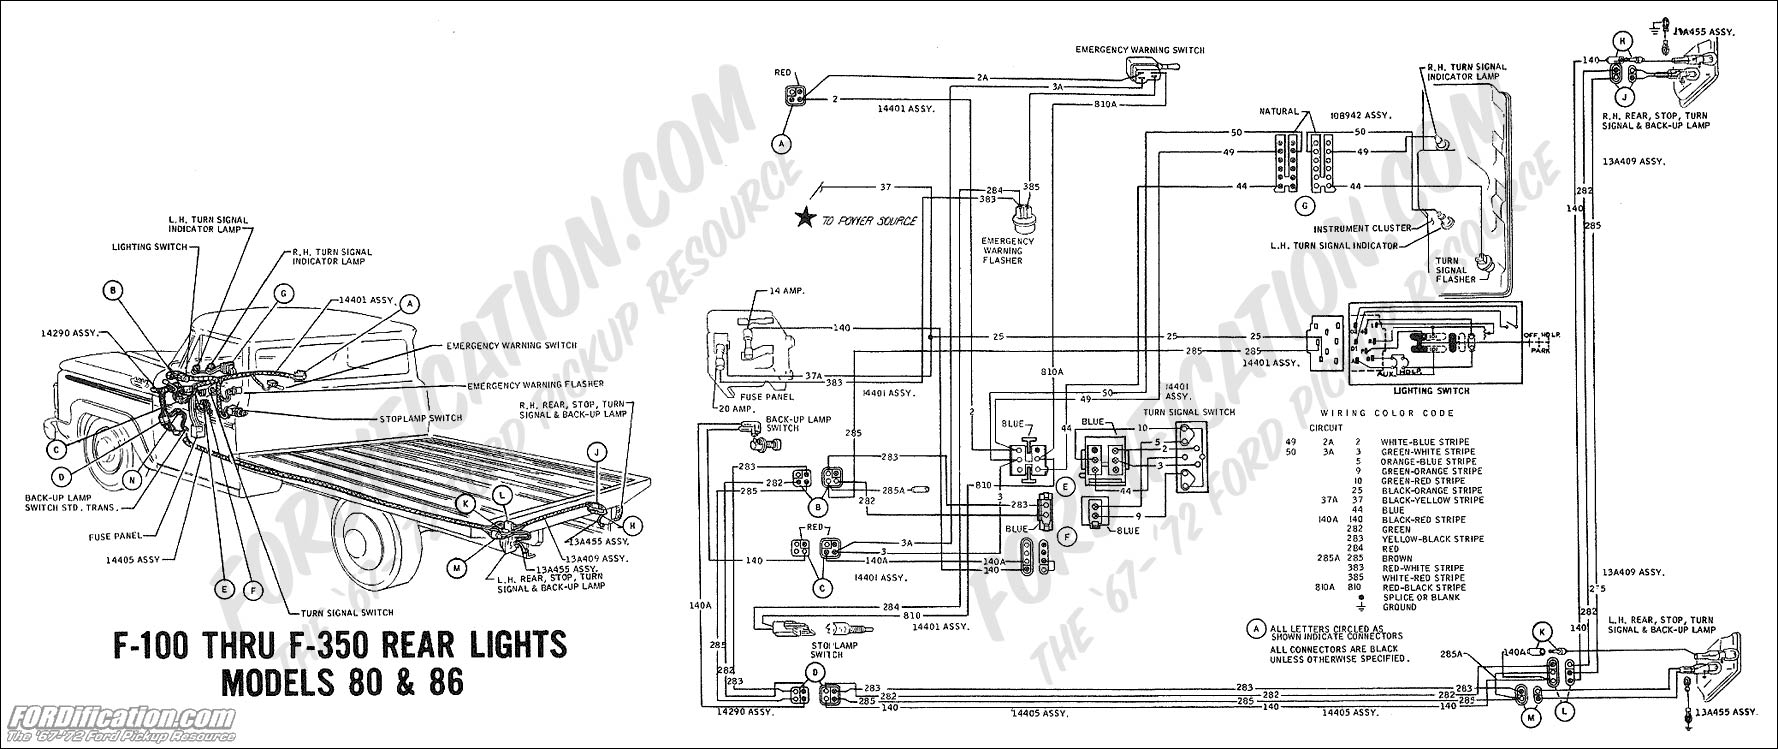 1178838 Gas  ing Out Of Carb Vent Tube likewise Solved Wiring Diagram For Wiper Motor 1995 Chevy S10 Fixya Beautiful And in addition Turn Signal Flasher Wiring 1491870 also Distributor Schematic Wiring 88 Ford F150 4 9l further Steering Suspension Diagrams. on 1983 ford truck wiring diagram